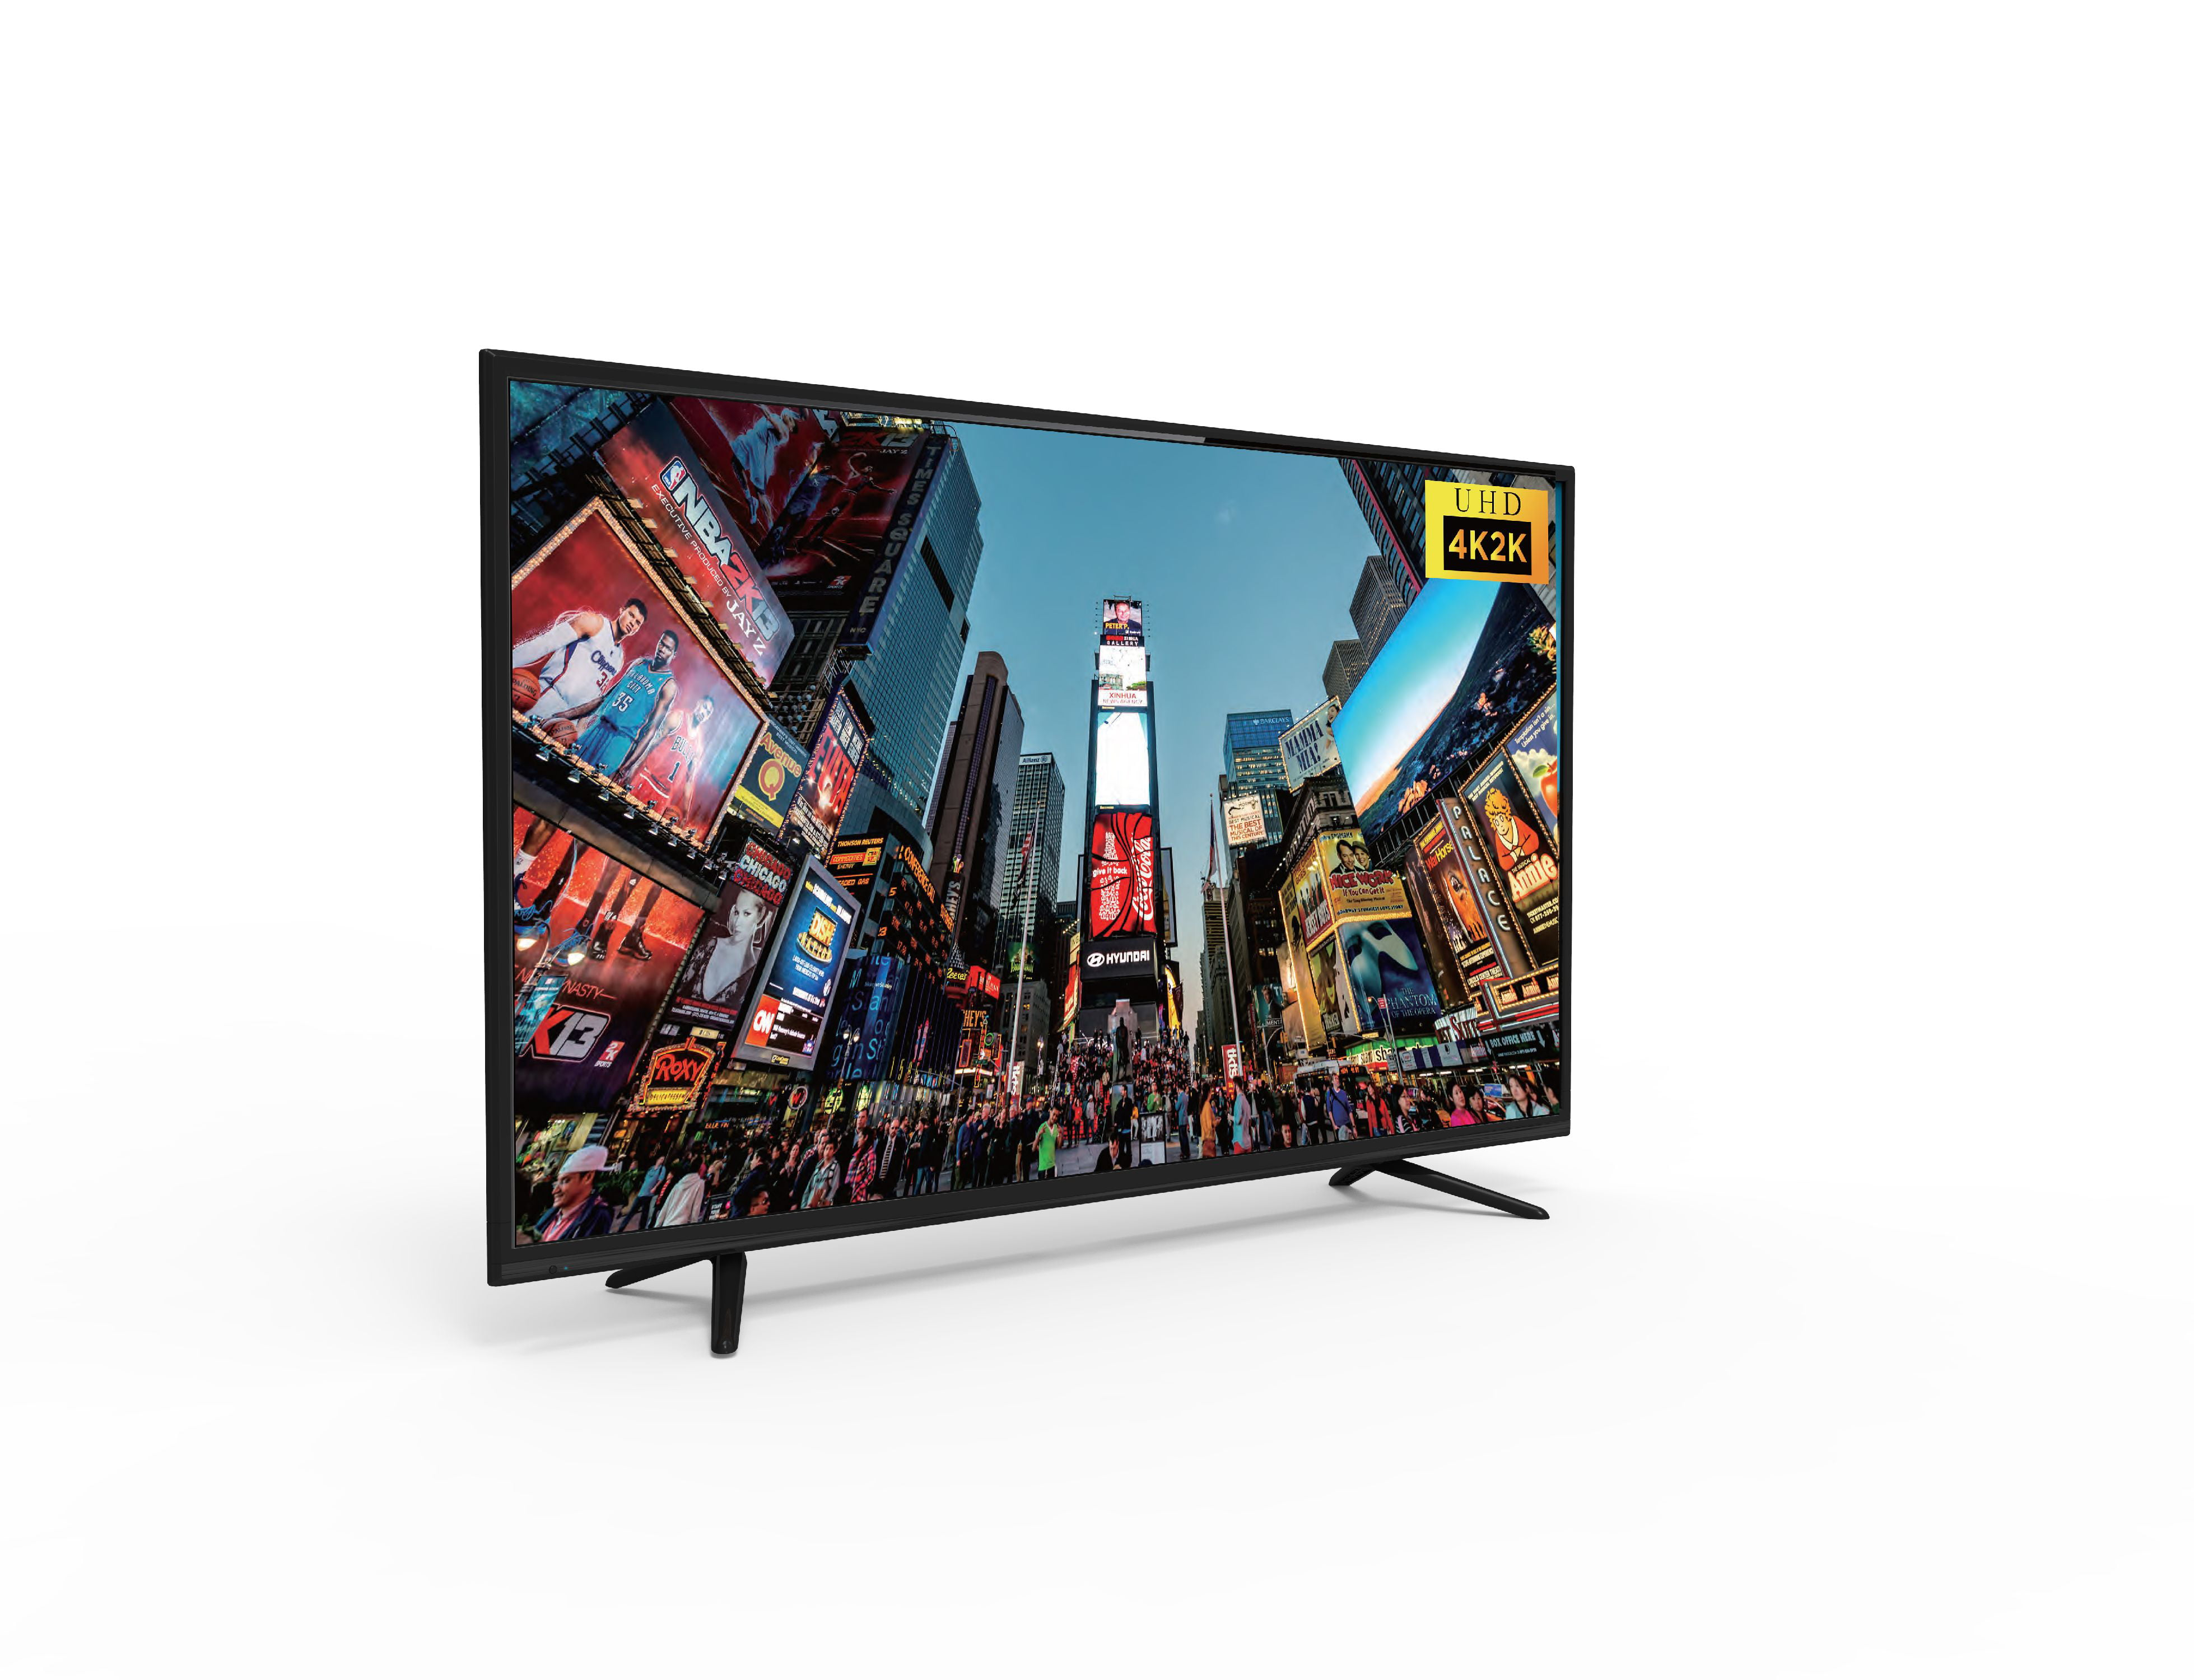 Porta Tv Chicago.Rca 55 Class 4k Ultra Hd 2160p Led Tv Rtu5540